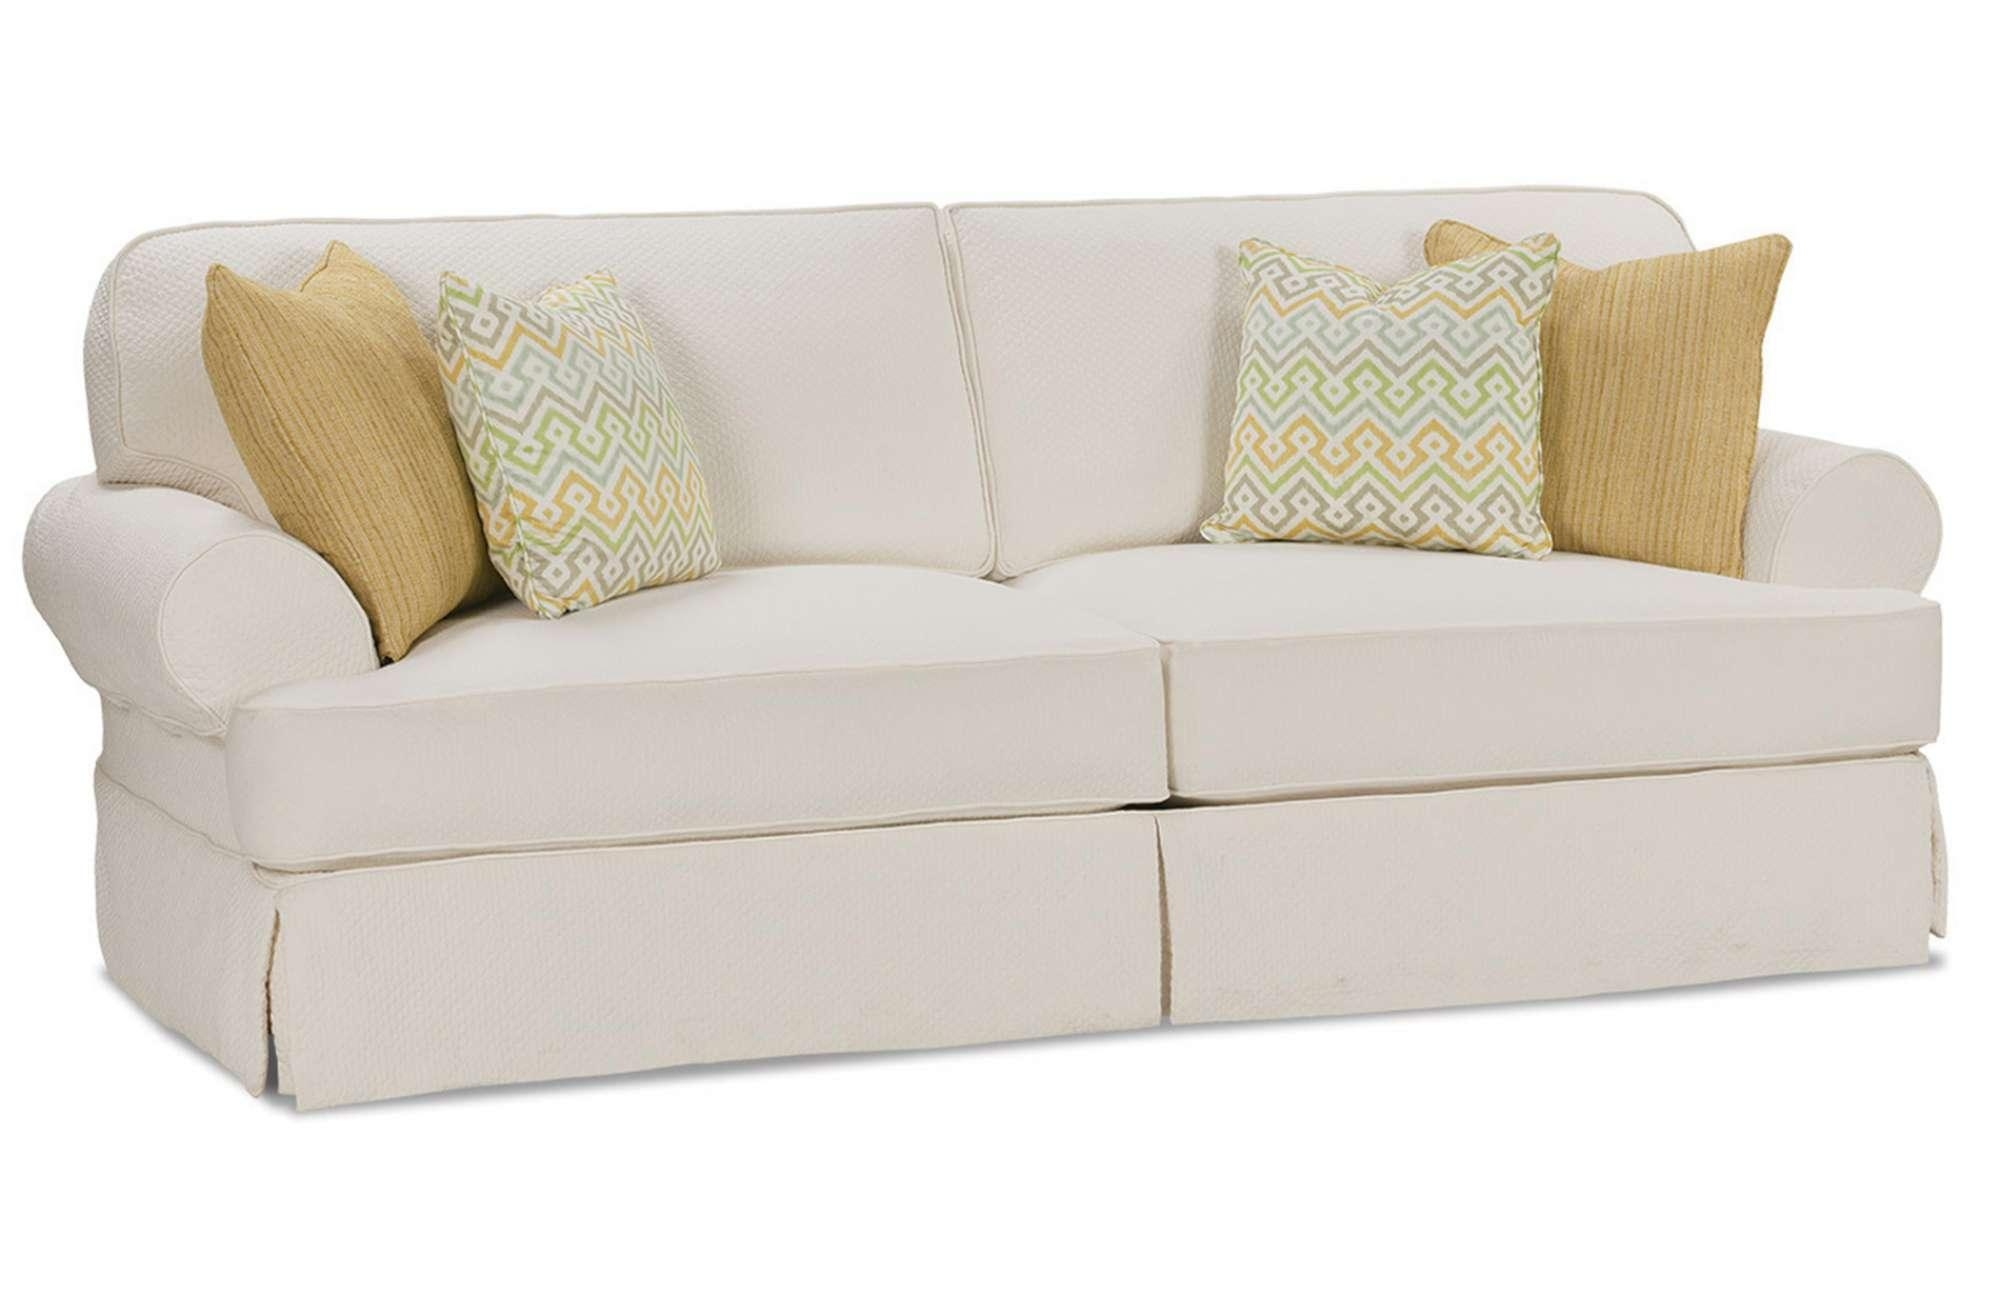 Furniture & Rug: Charming Rowe Furniture Slipcovers For Best With Slip Covers For Love Seats (View 9 of 20)